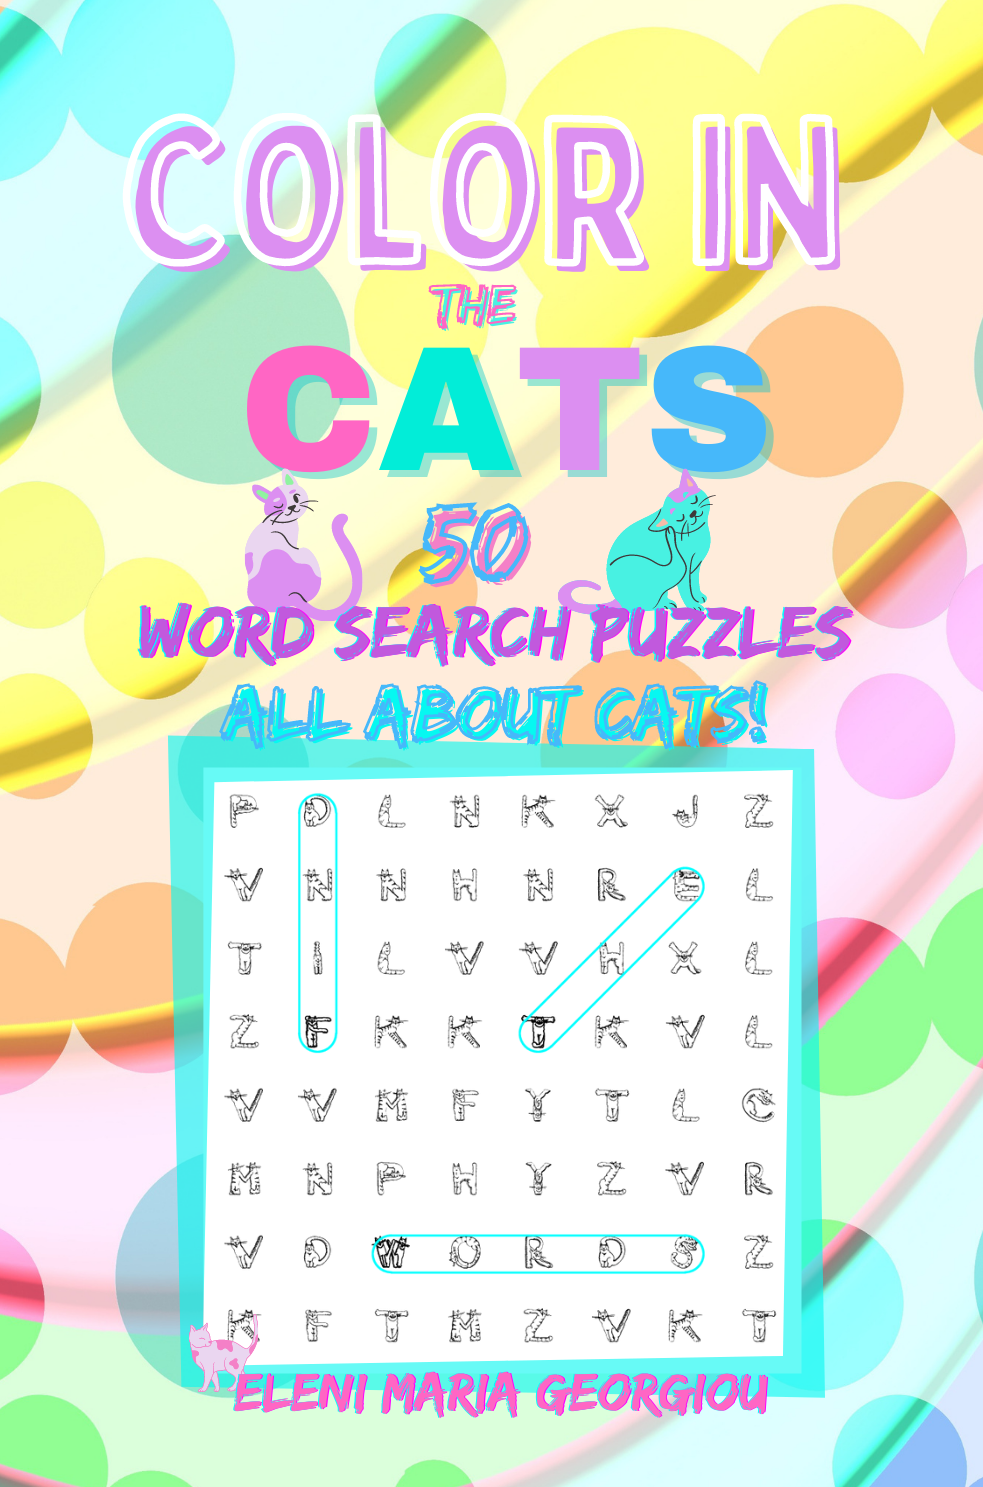 Color in the CATS: 50 Word Search Puzzles All About Cats!